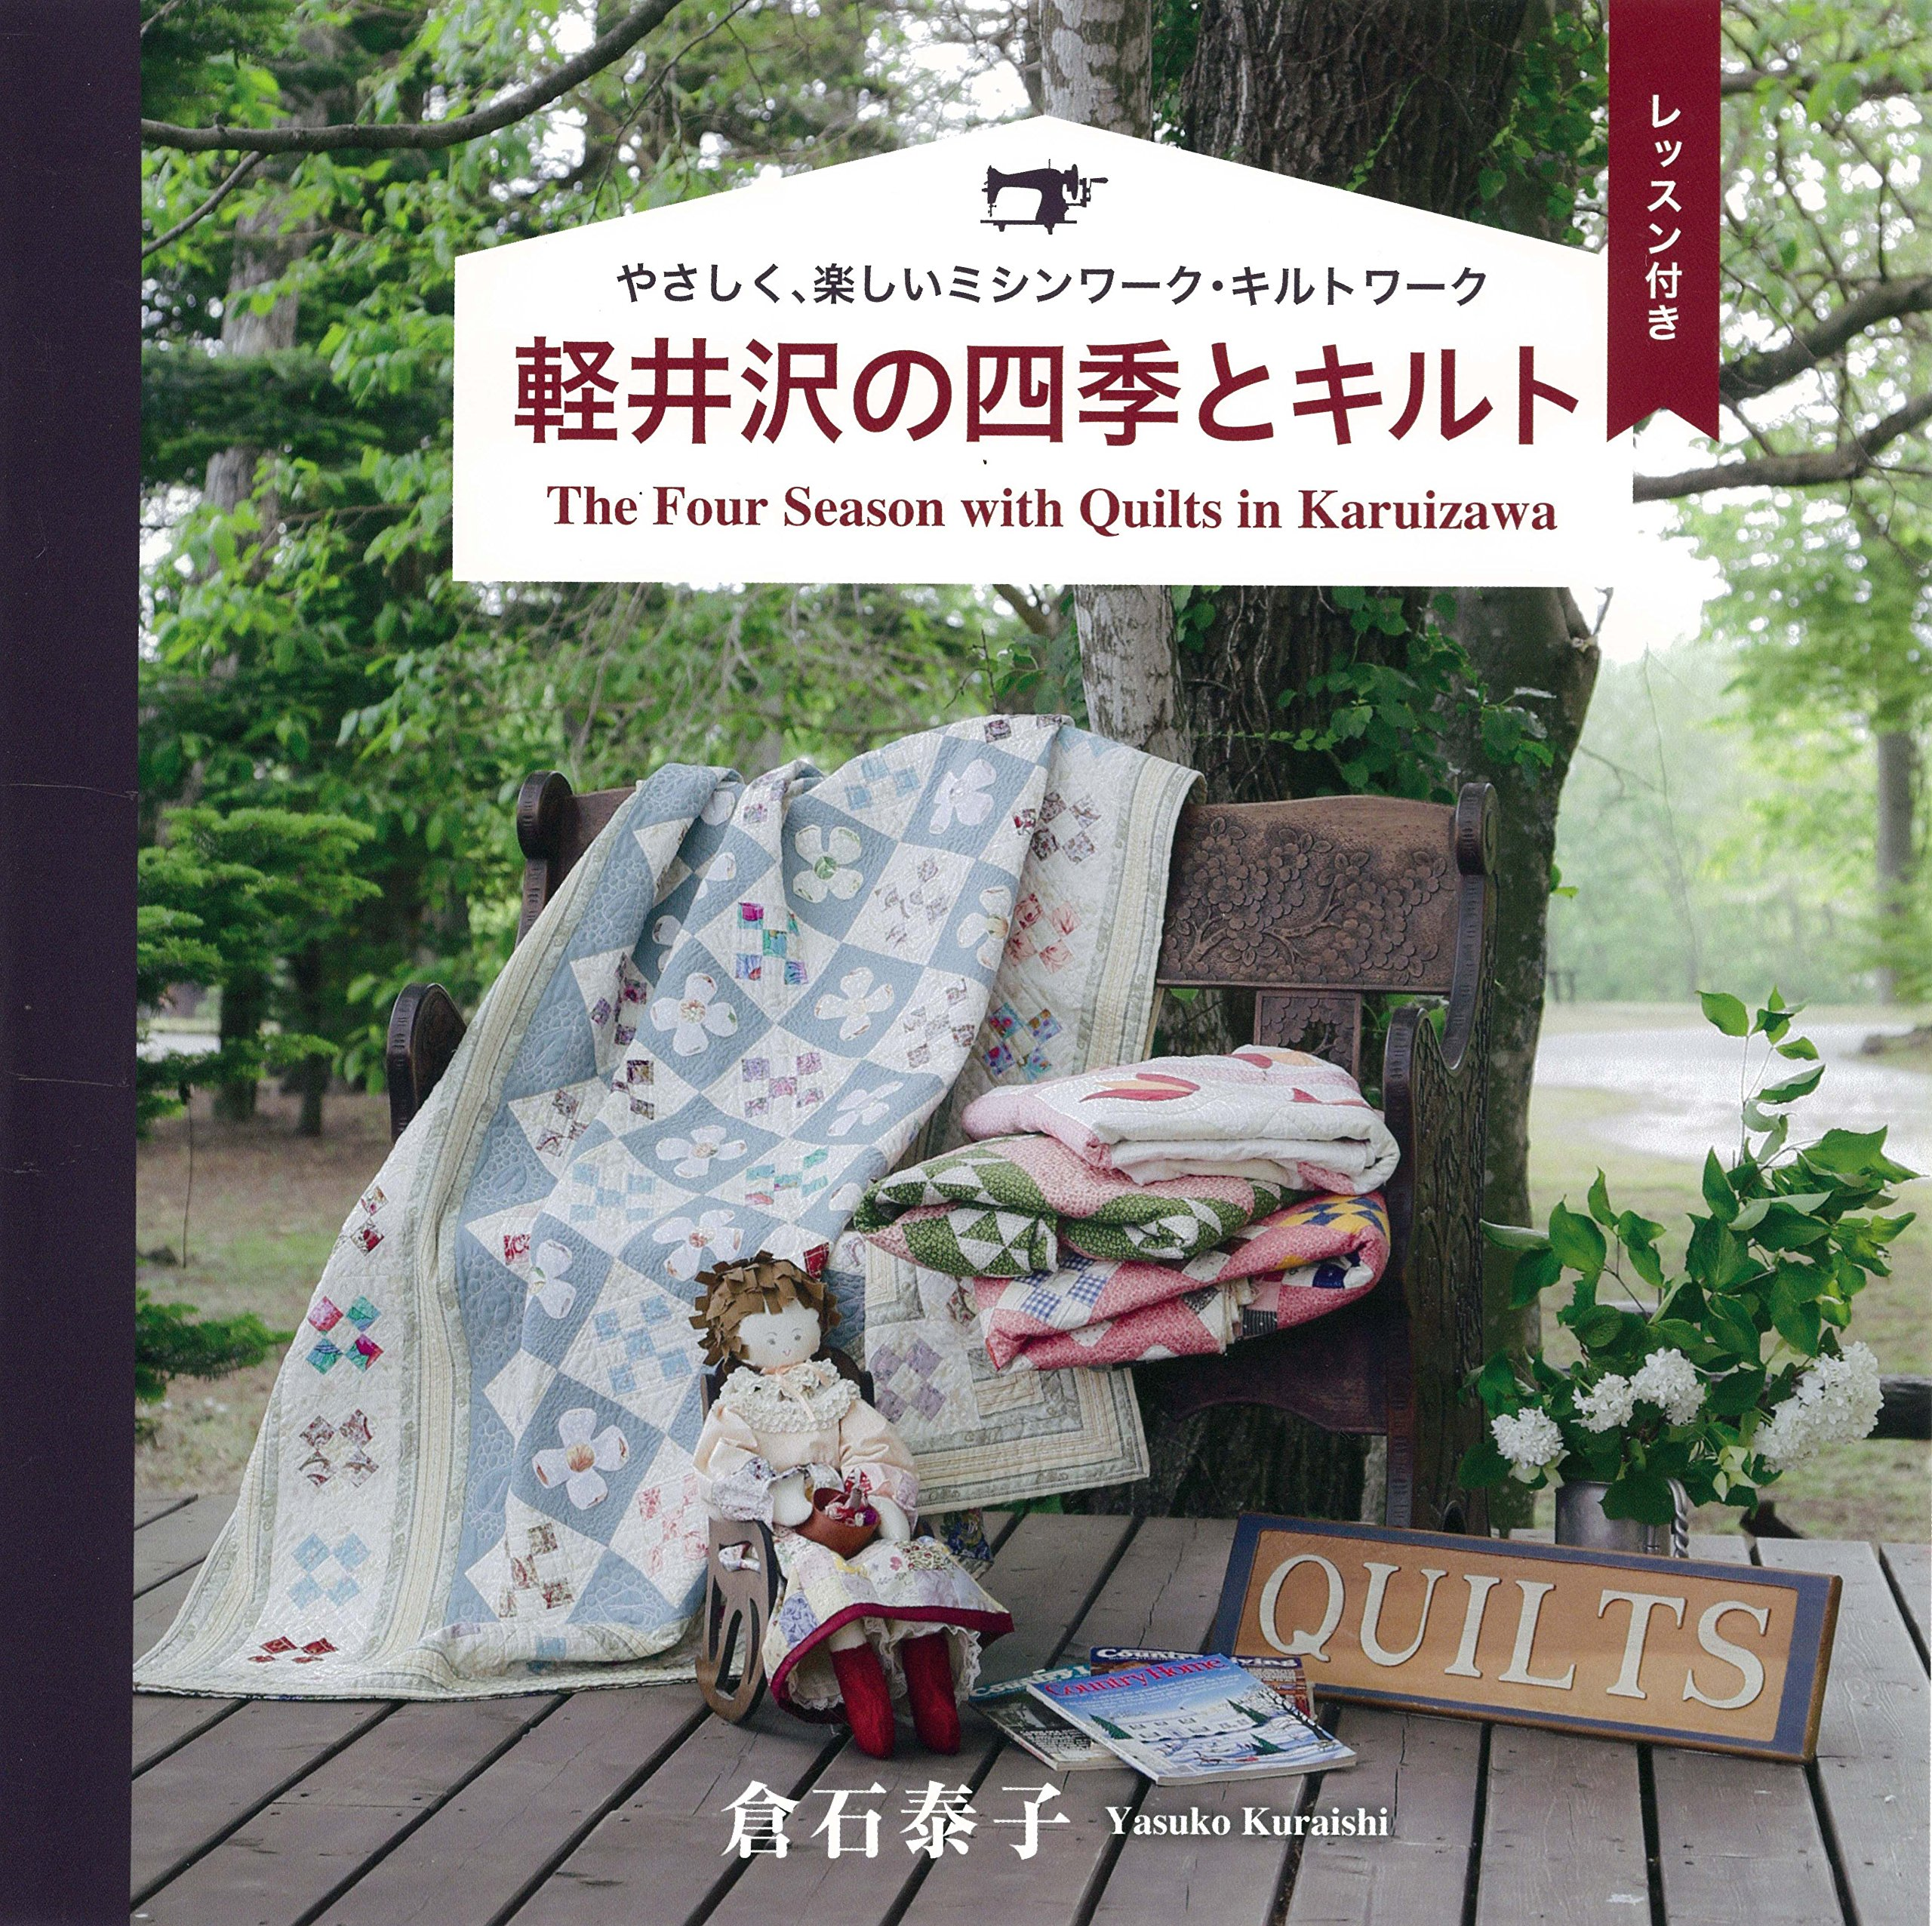 The four seasons with quilt in Karuizawa